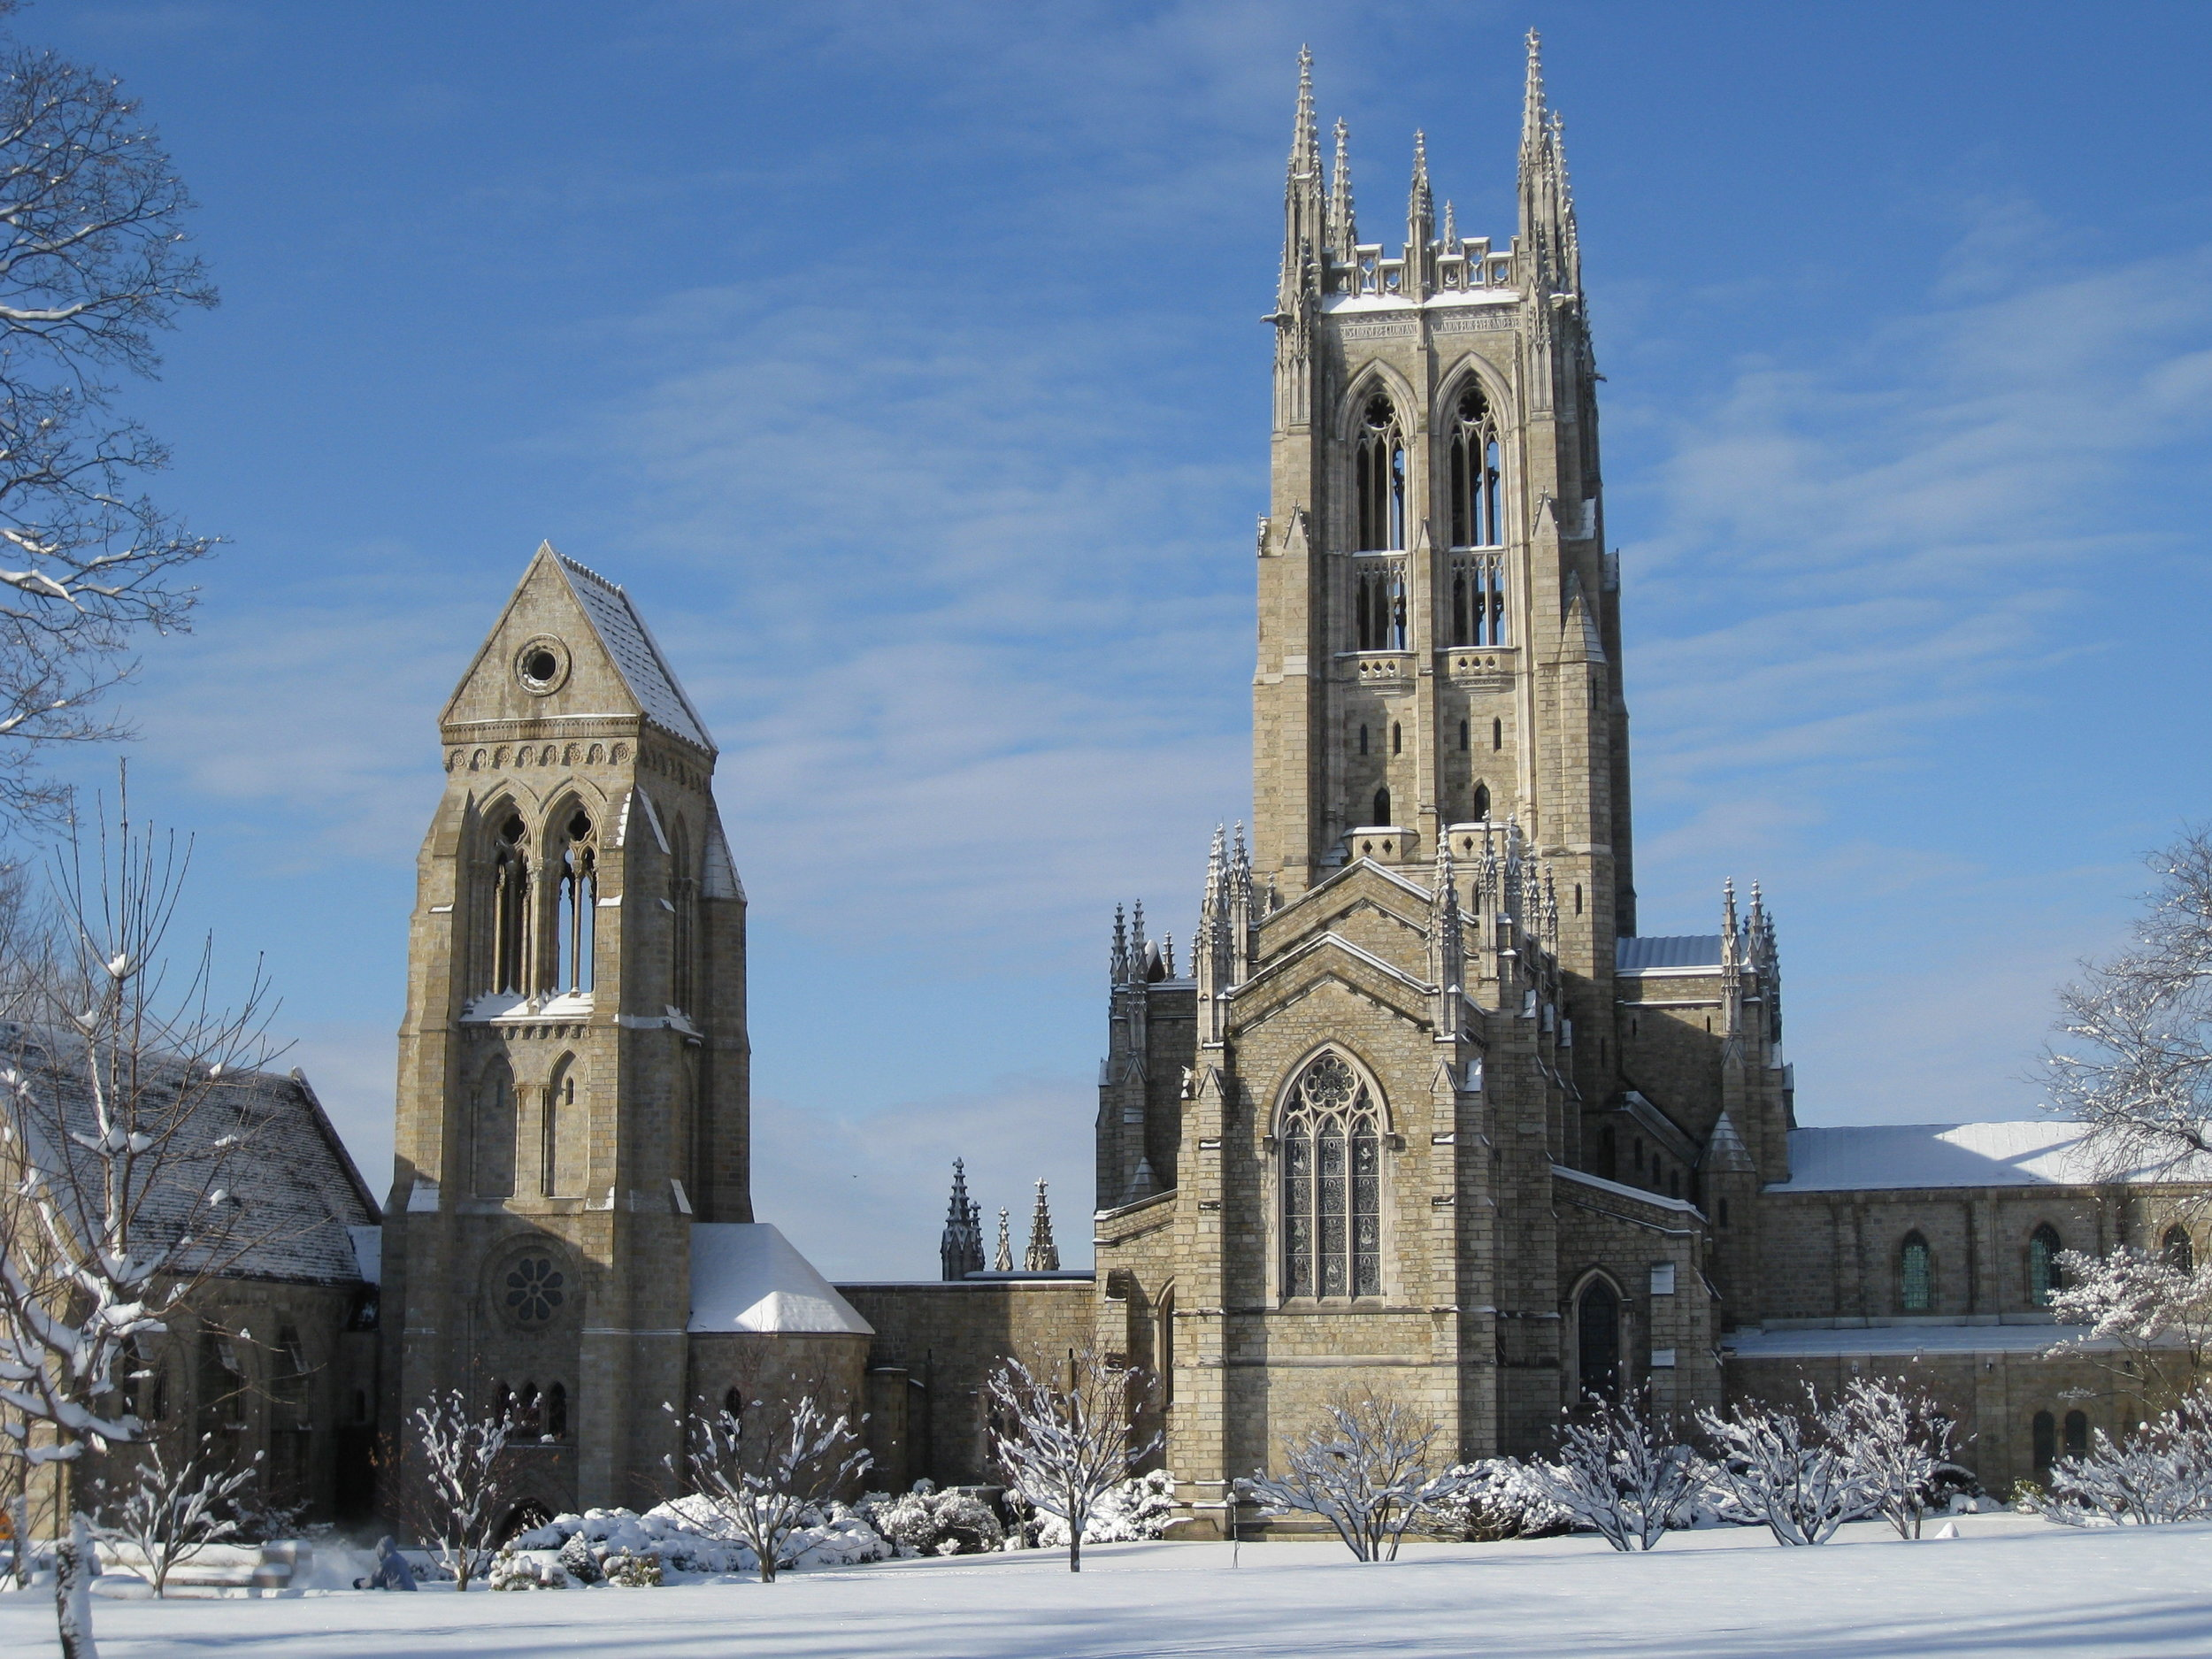 Bryn Athyn Cathedral in the snow